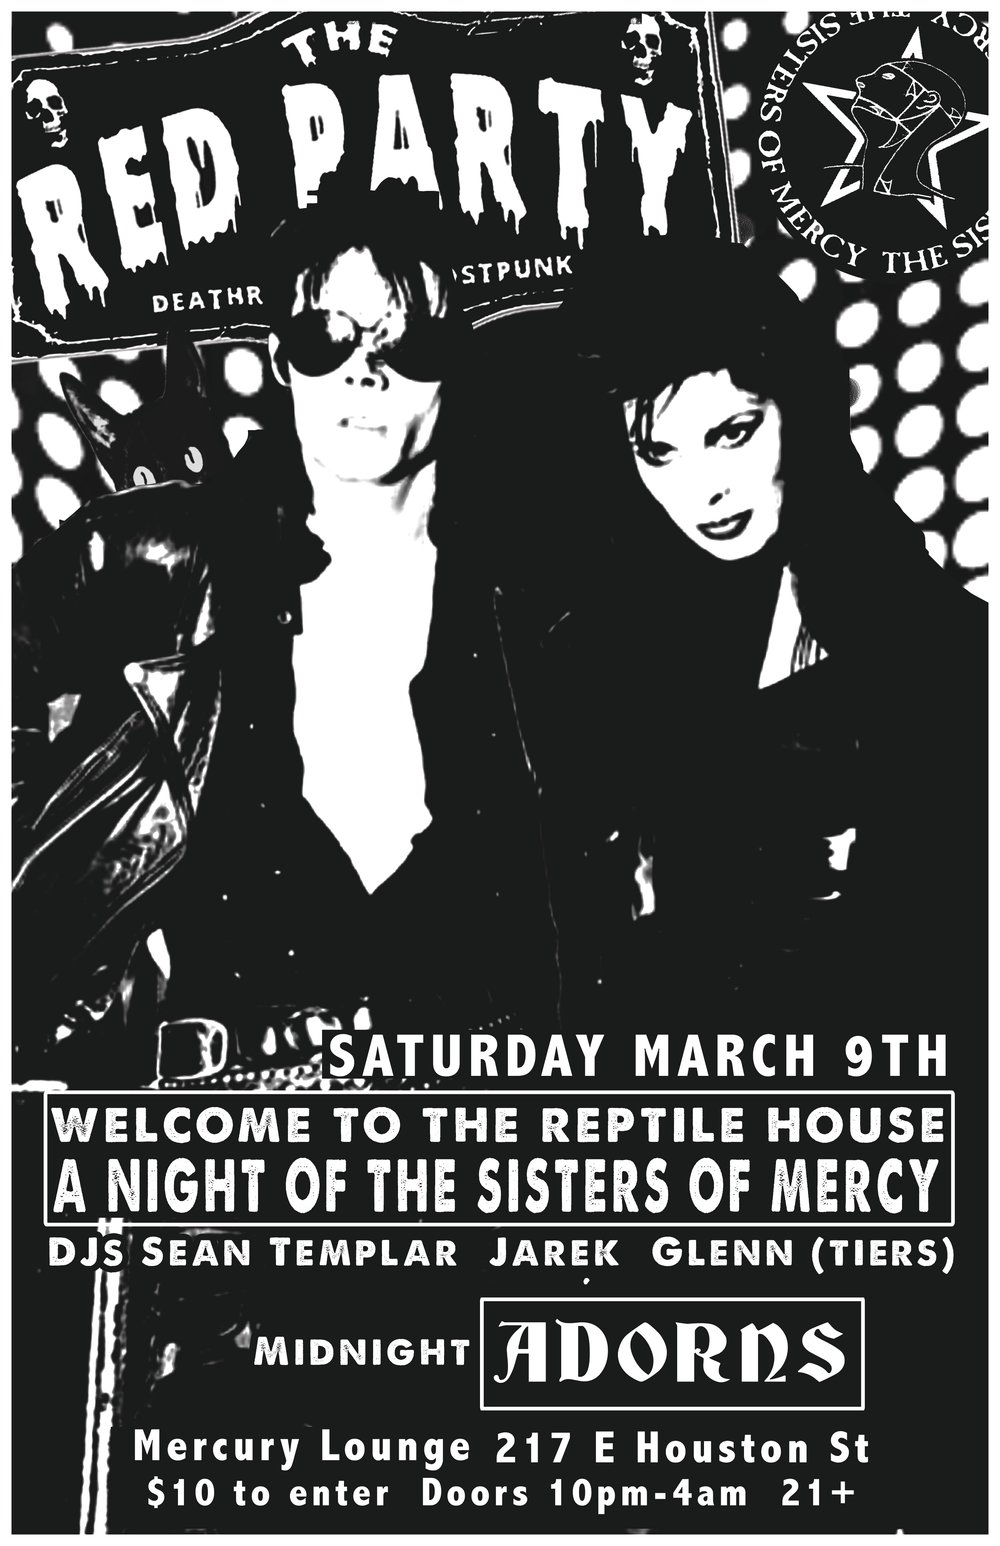 Welcome To The Reptile House - Saturday March 9thA Night dedicated toThe Sisters of Mercy!This will be our 11th year of The Reptile House! A Night devoted to The Sisters of Mercy!Performing live is the enchanting new artist from New York Adorns - we can not wait to share them with you!DJs are none other than Sean Templar, Jarek & Special Guest Glenn (Tiers)